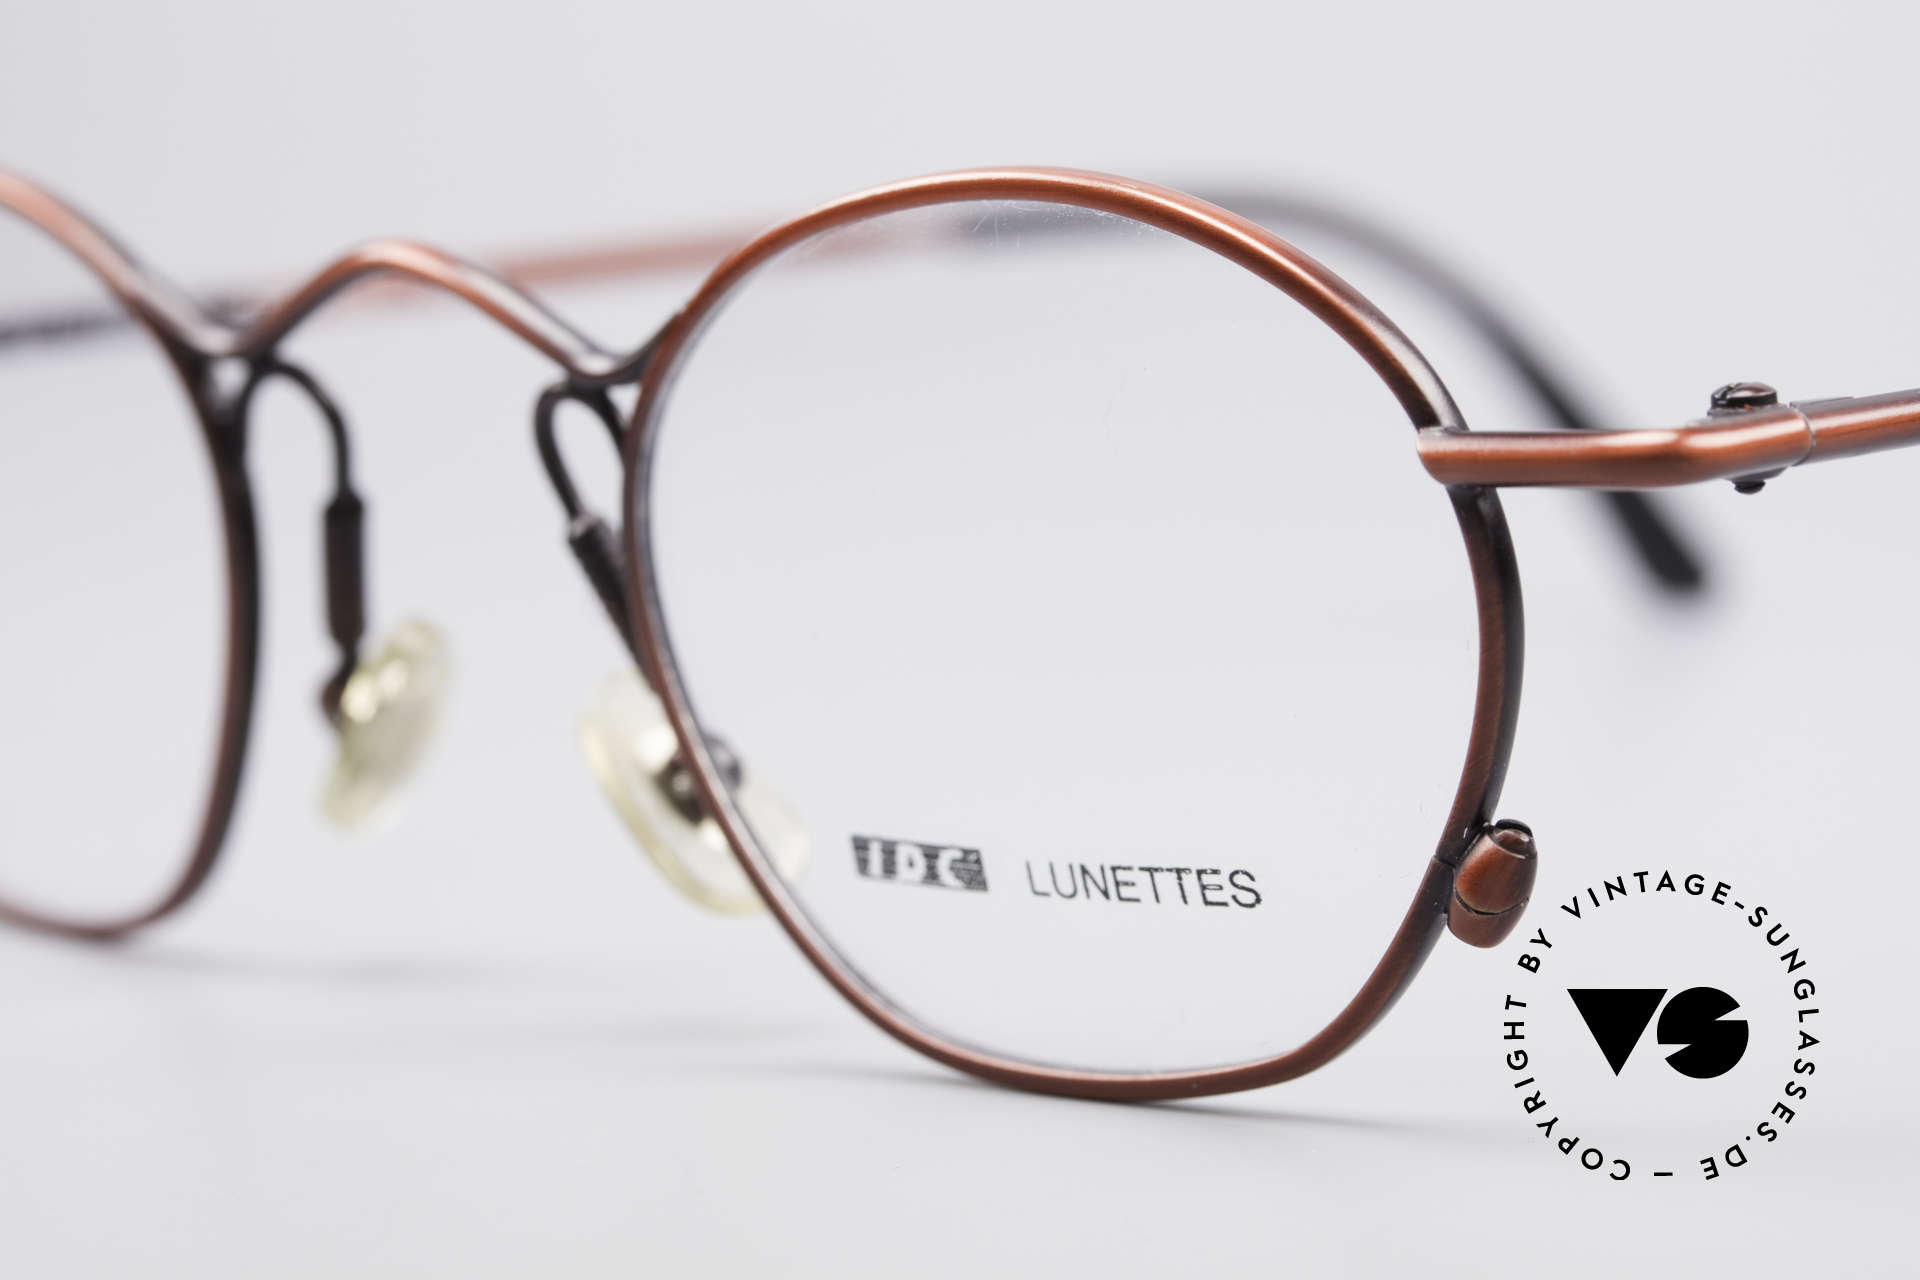 IDC 101 True Vintage No Retro Glasses, extraordinary design details: naturally vintage IDC, Made for Men and Women